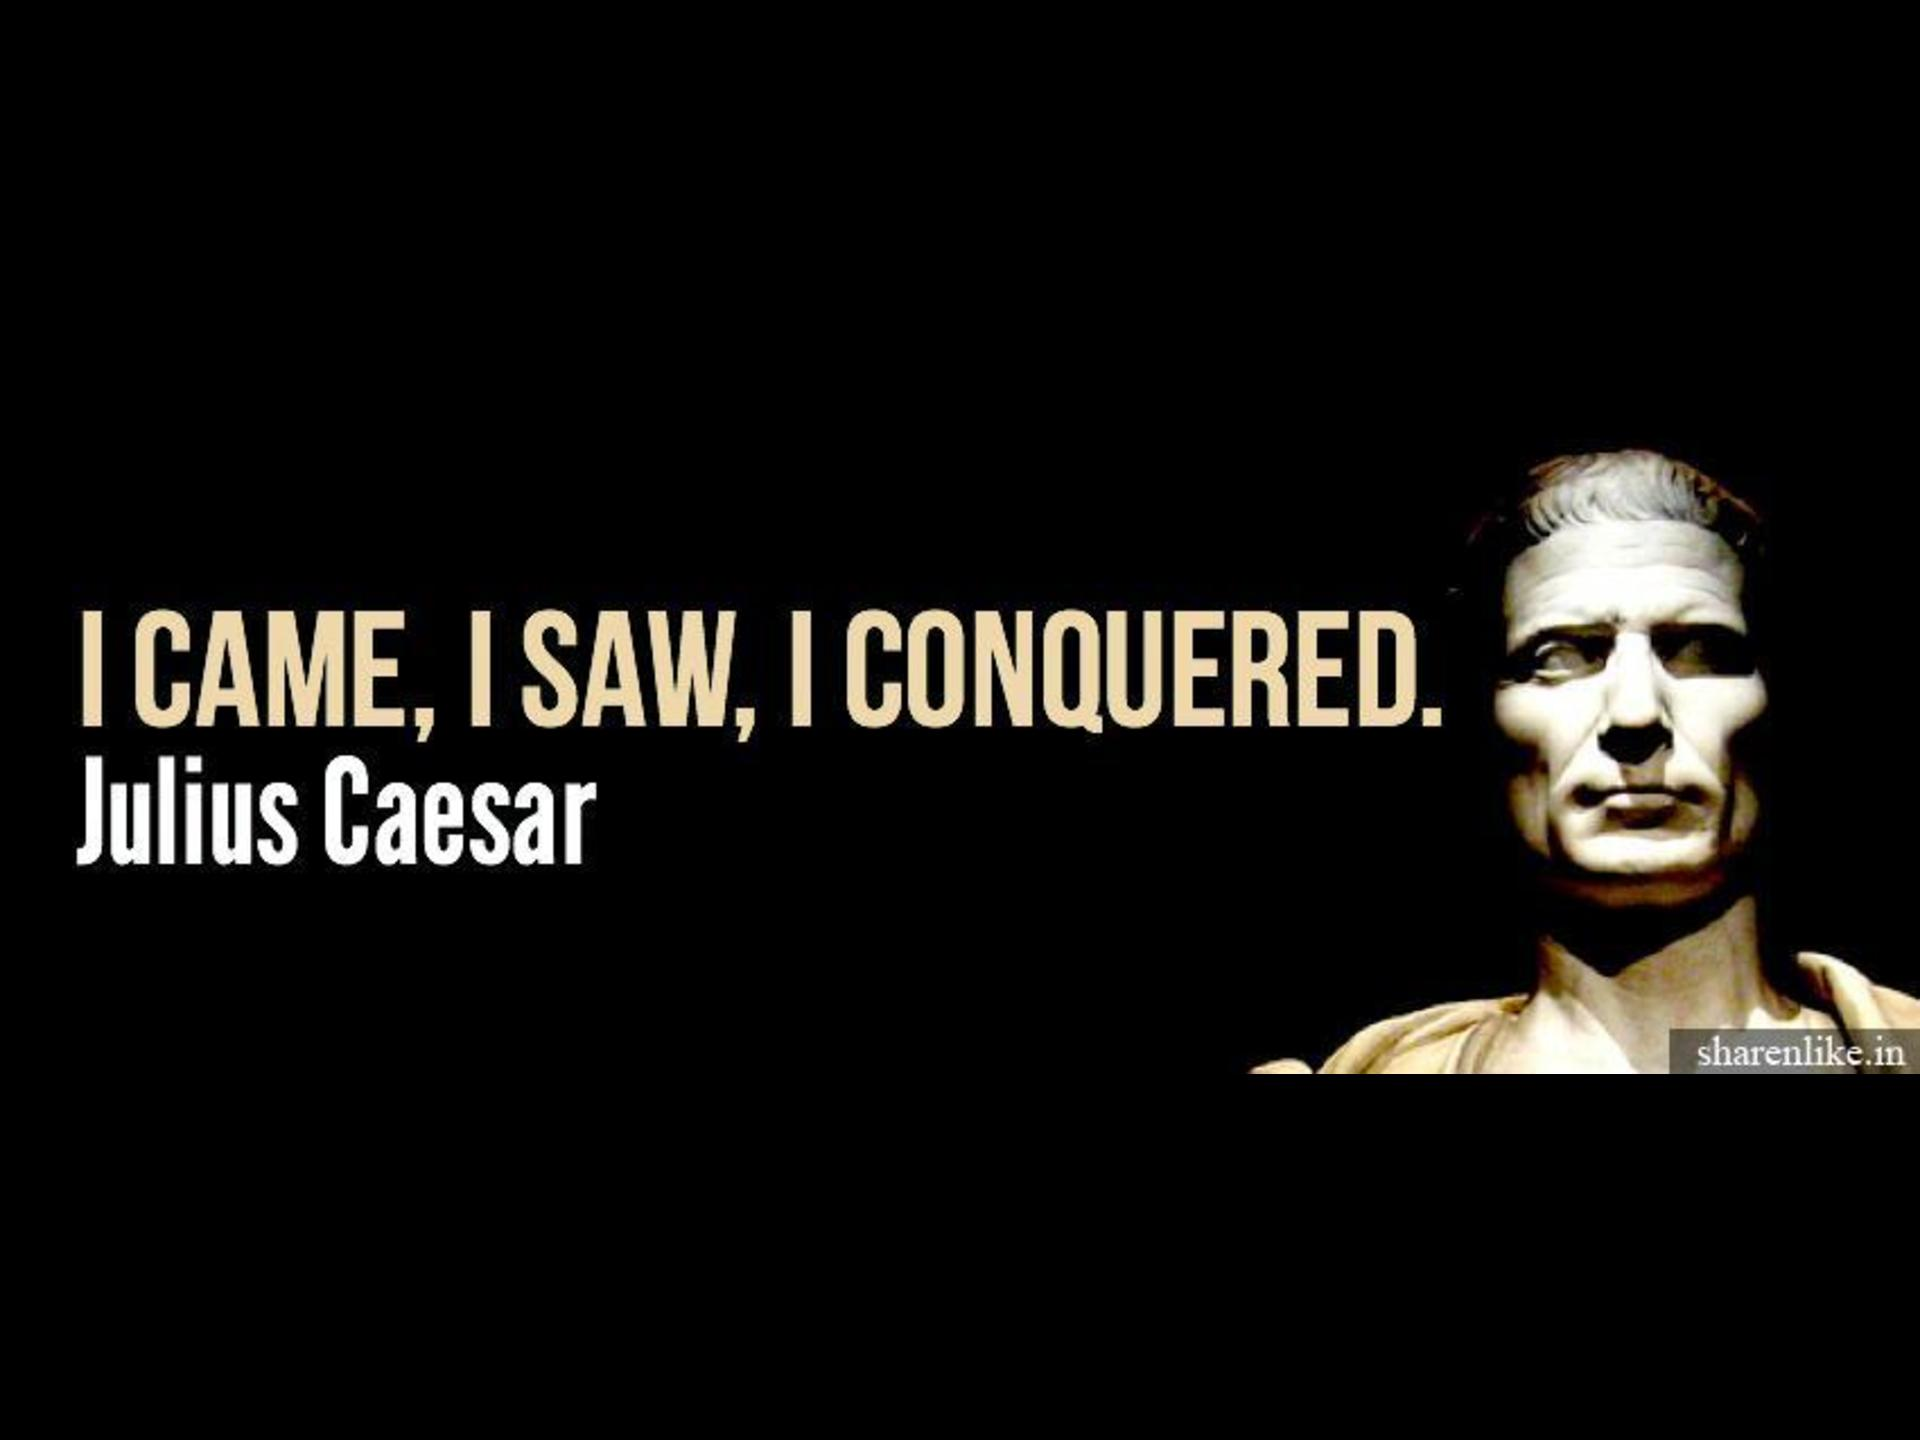 Images Of Inspiring Quotes Wallpaper 70 Inspiring Julius Caesar Quotes And Sayings Collection